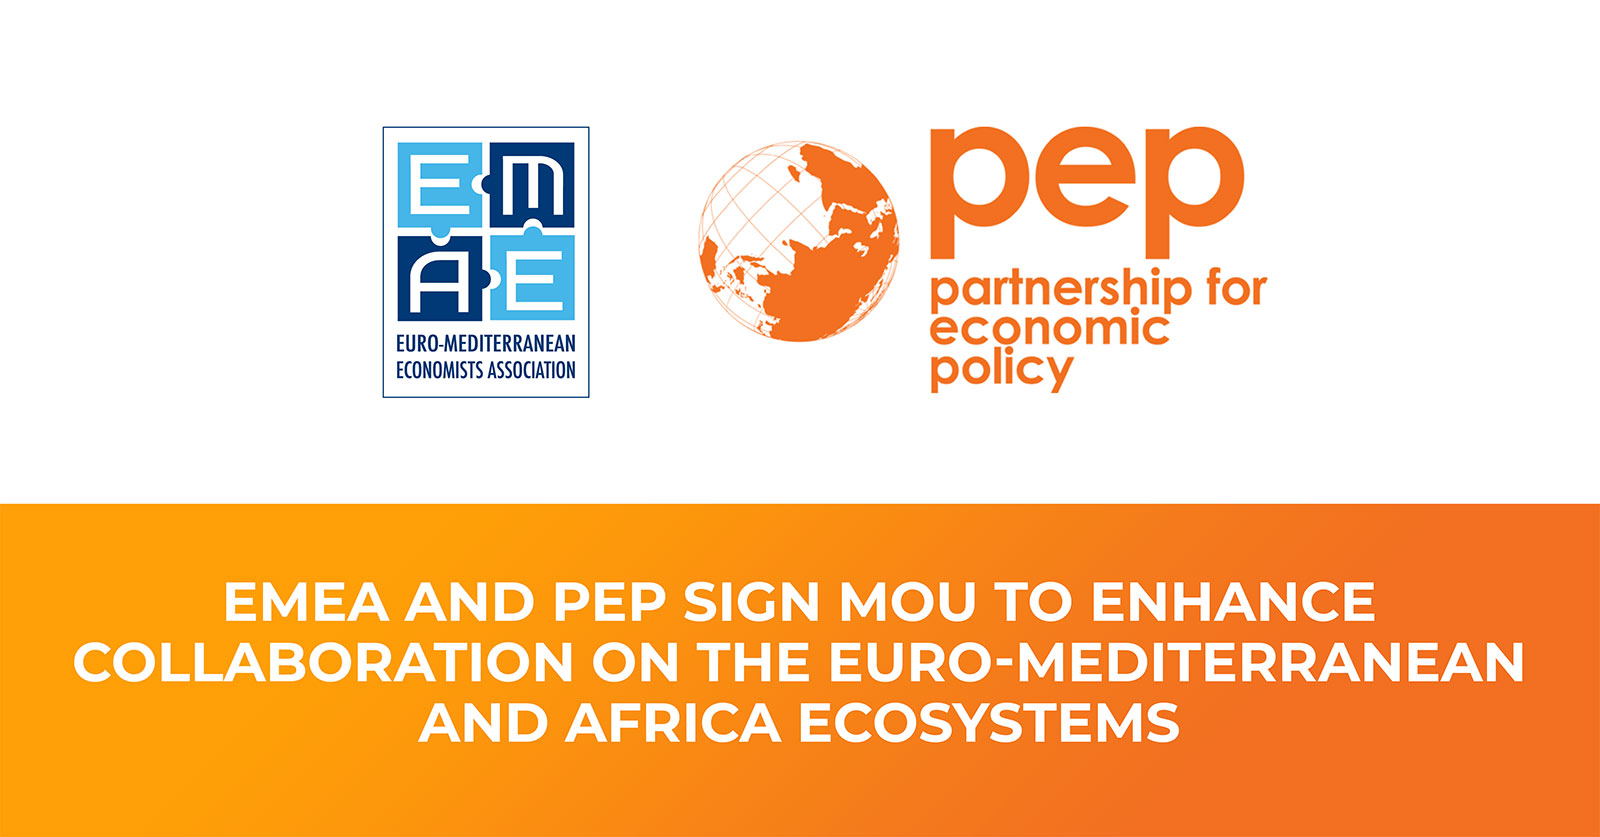 EMEA and PEP sign MoU to enhance collaboration on the Euro-Mediterranean and Africa ecosystems